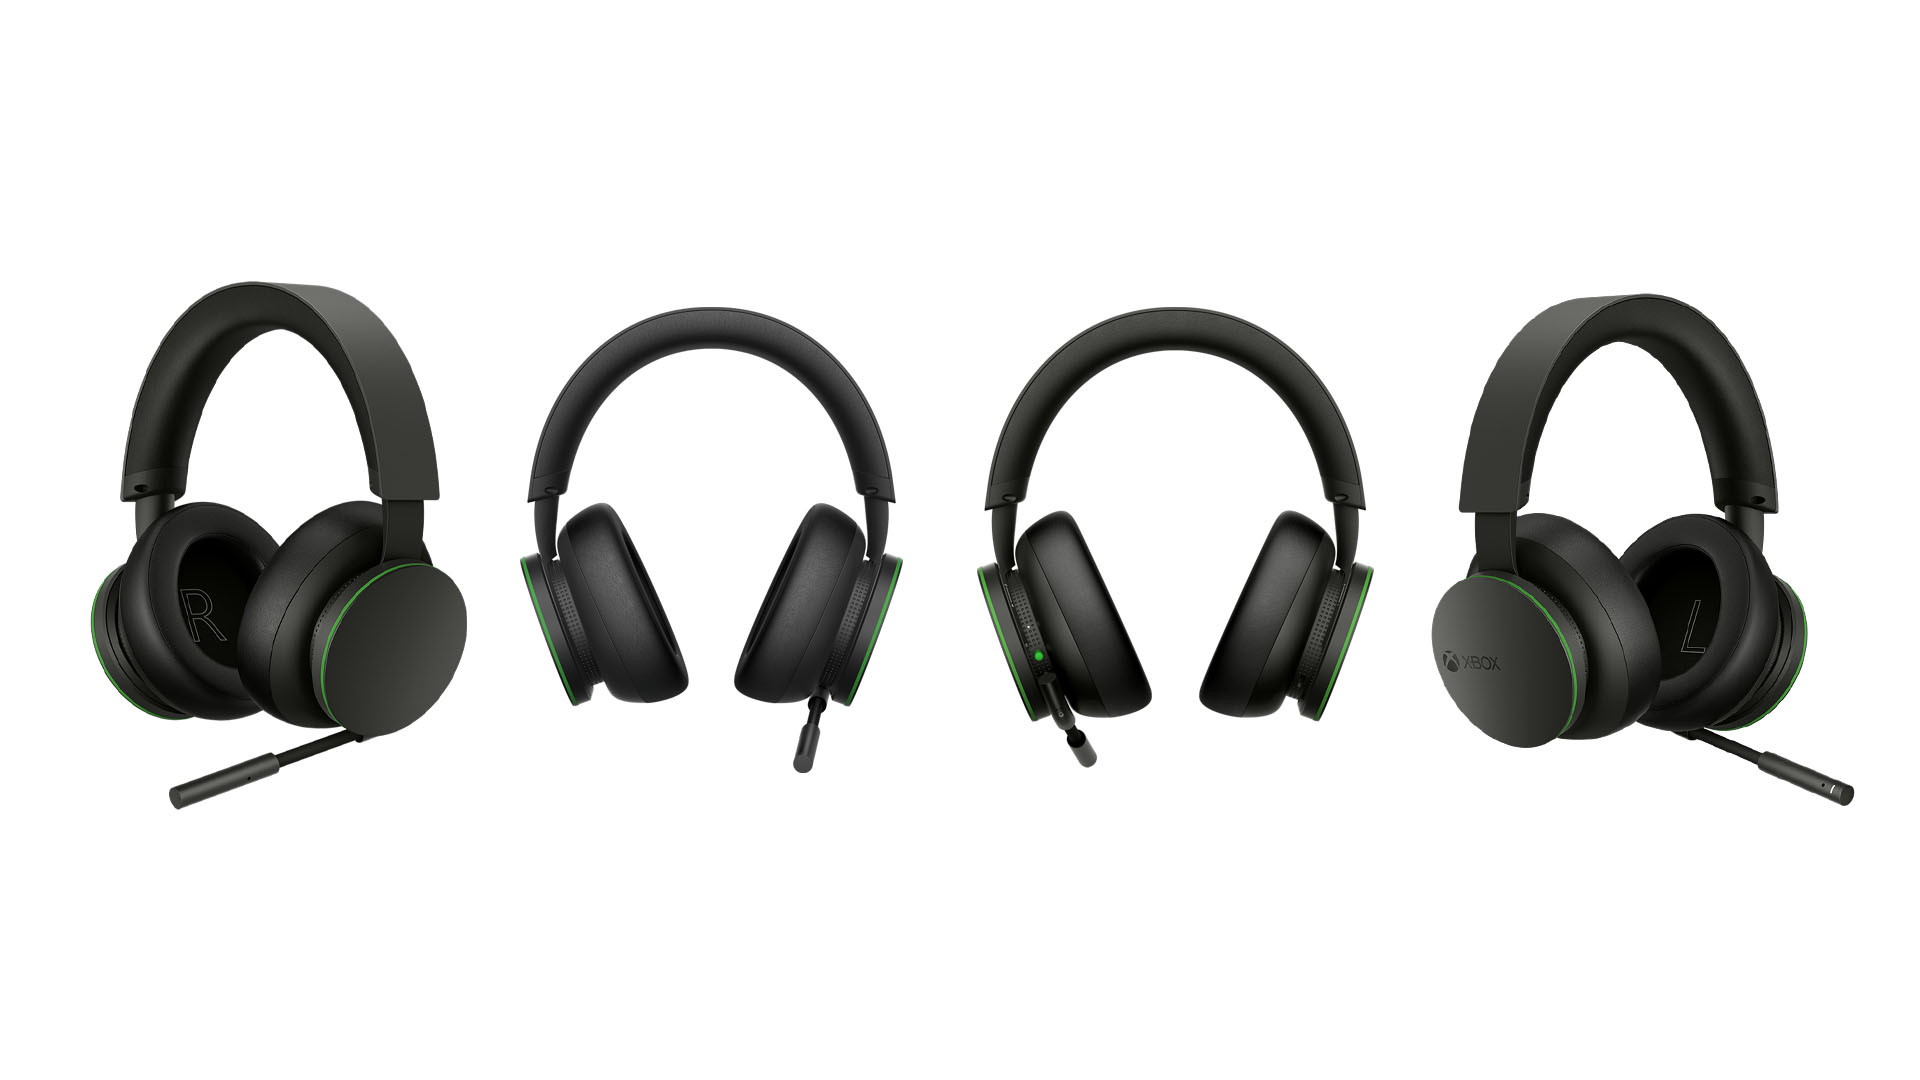 Xbox Wireless Headset Renders